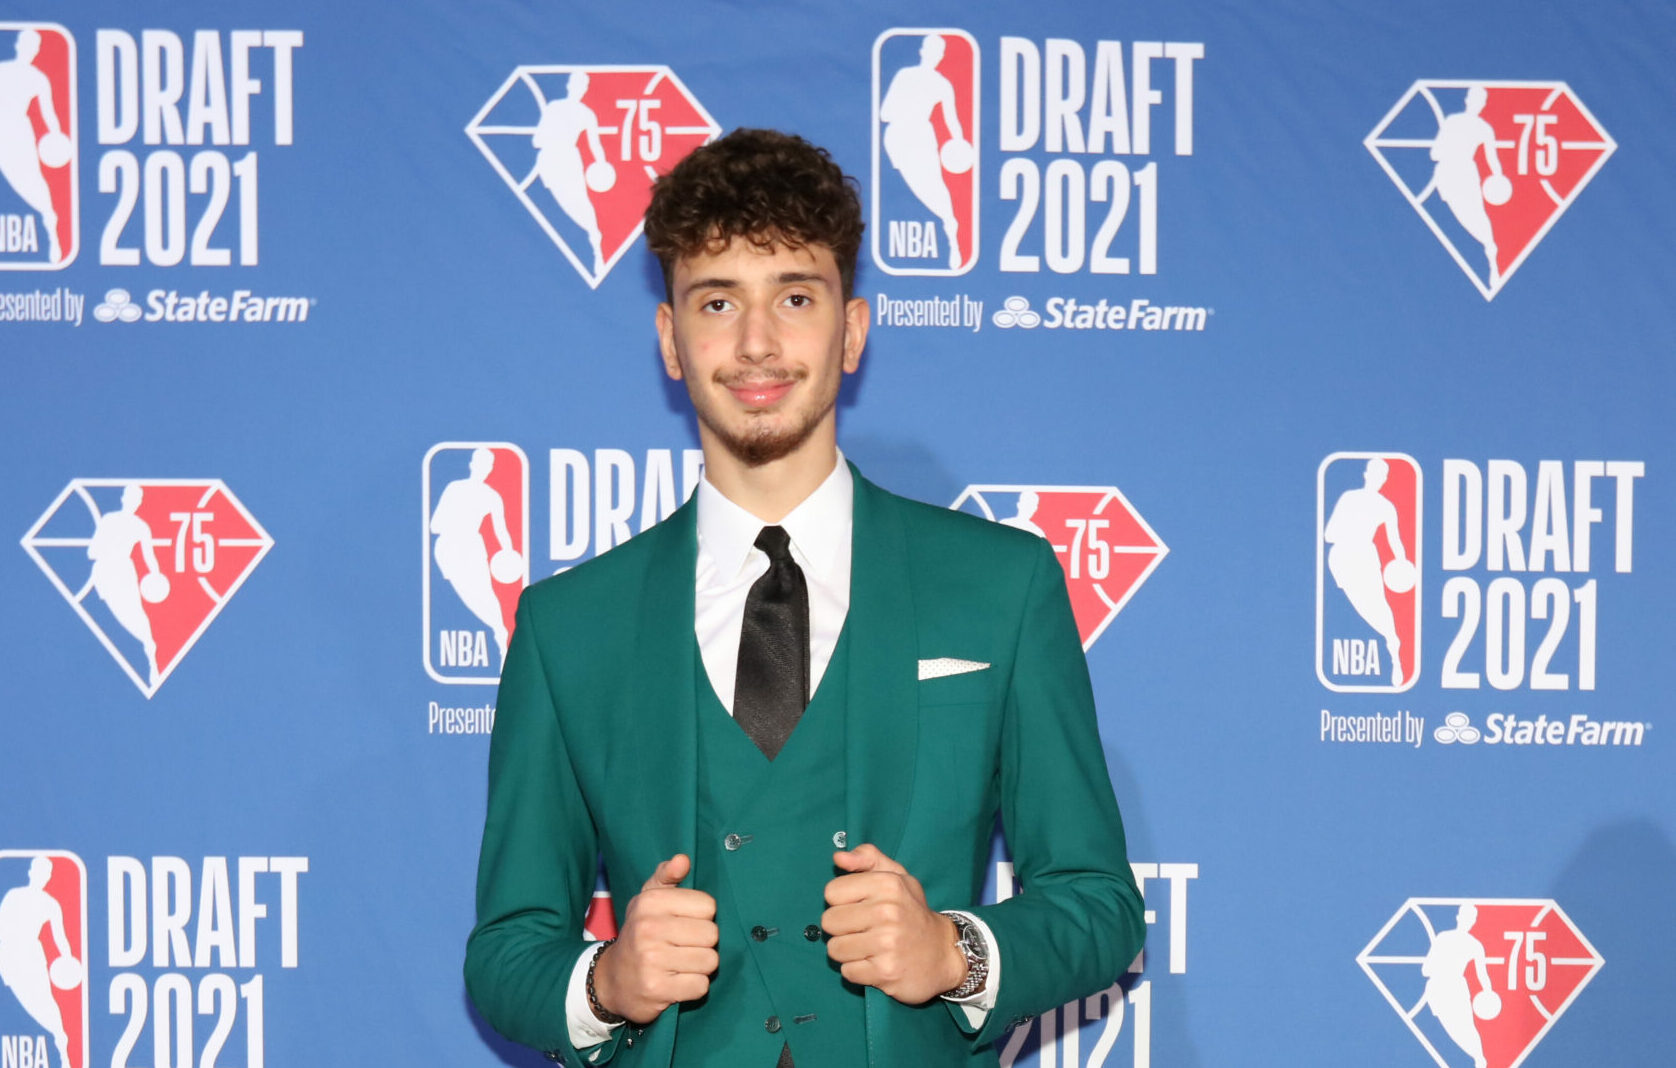 Reports: Rockets acquire 16th pick Alperen Sengun in trade with Thunder